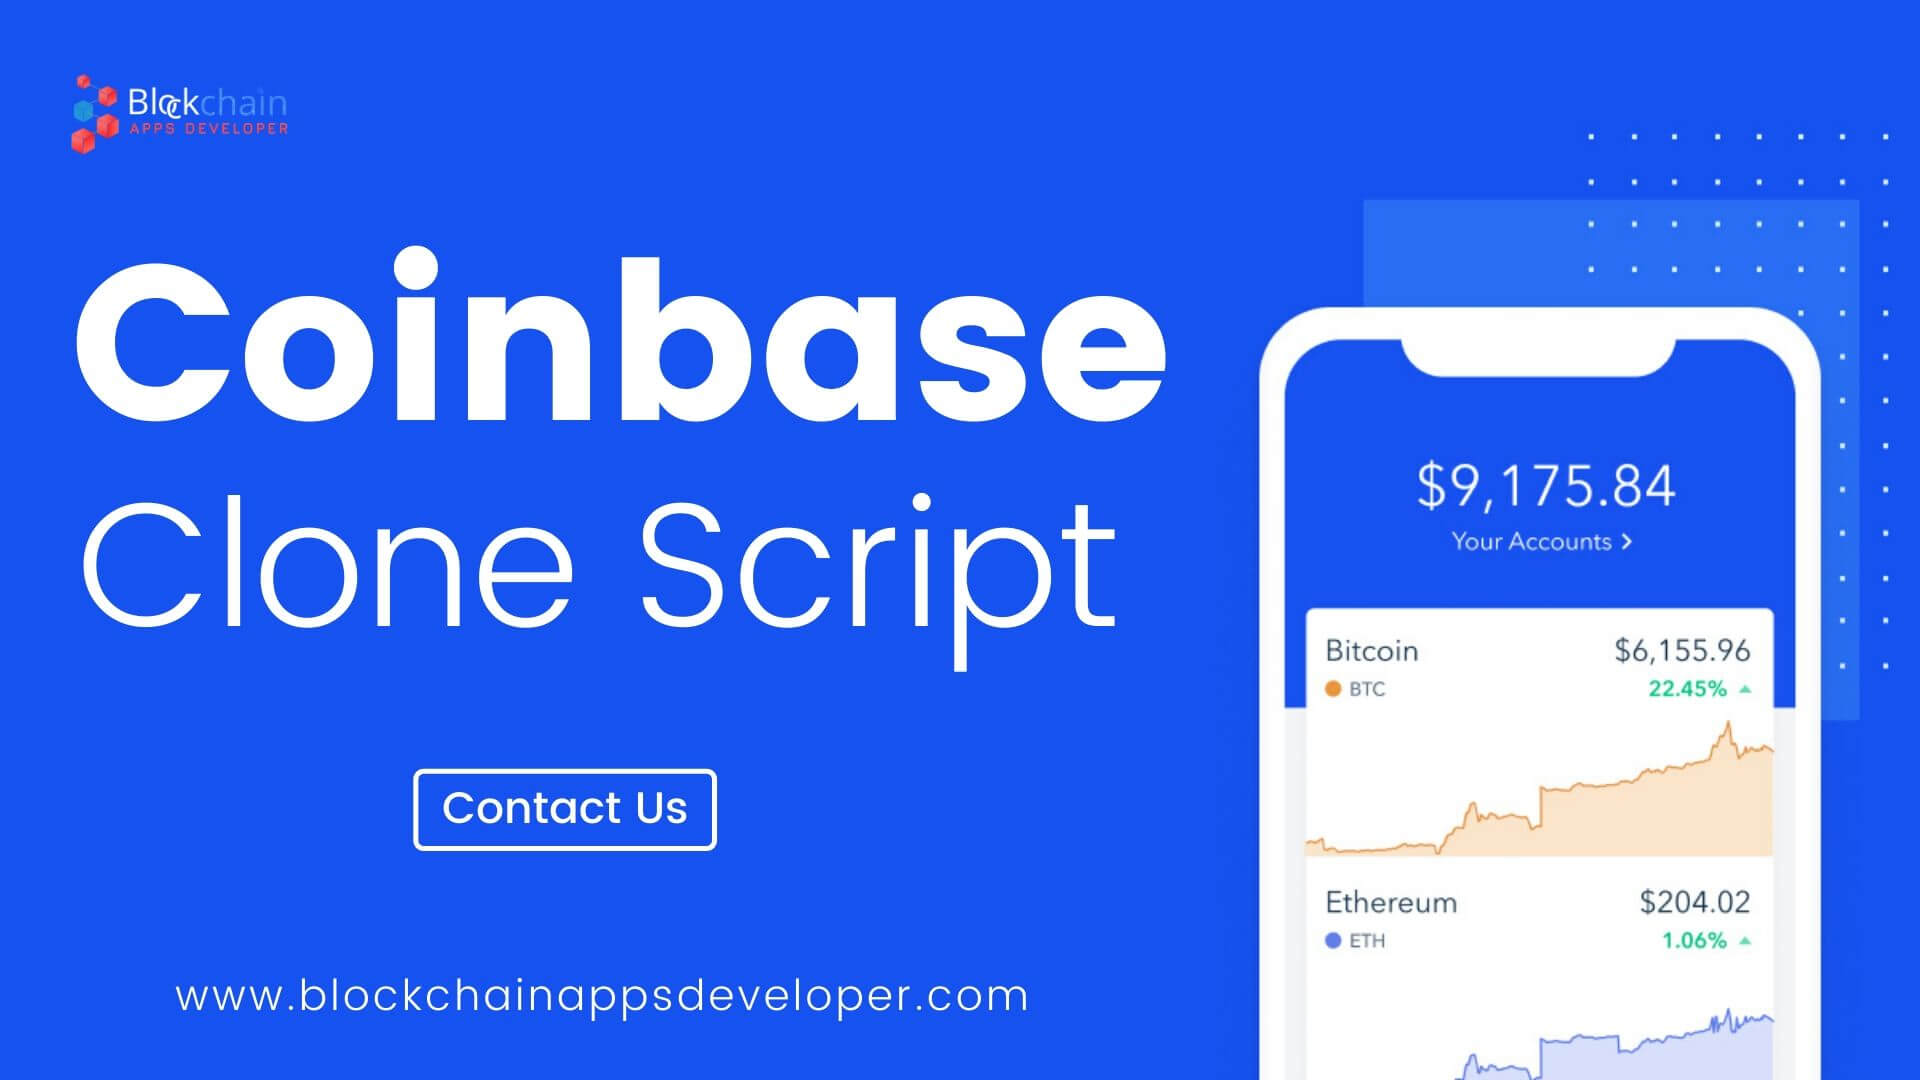 Coinbase Clone Script to launch a Crypto Exchange Platform like Coinbase